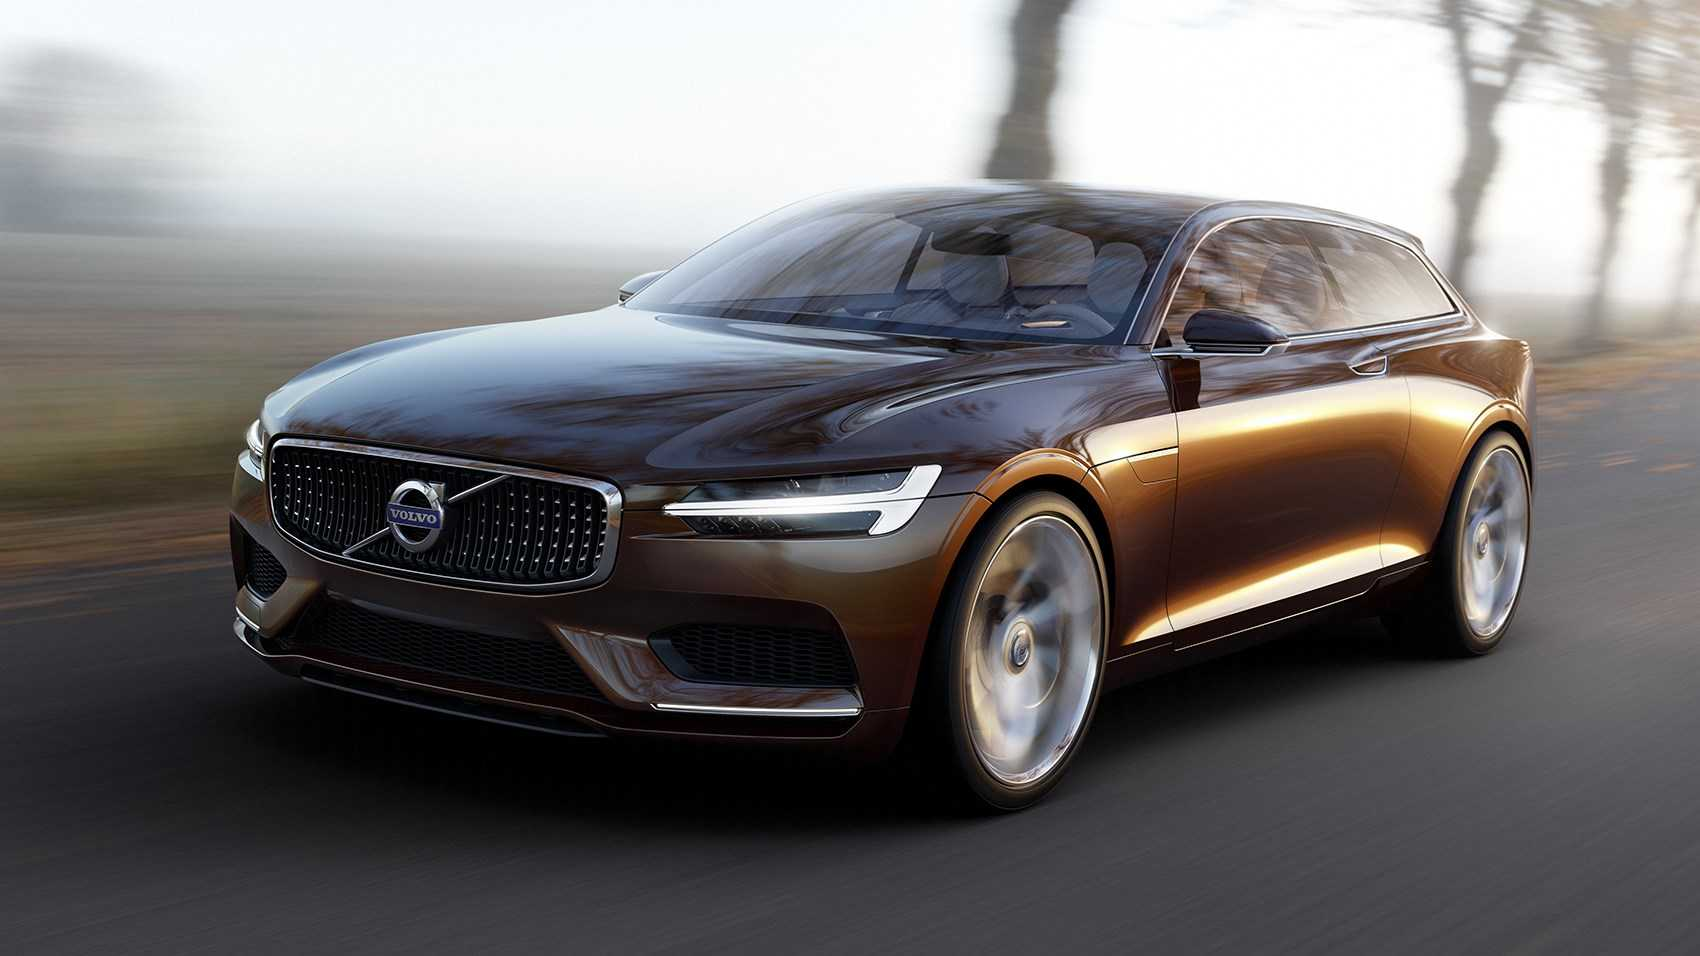 2016 Volvo S90 – Swedes Next Flagship Revealed in Scaled Down Model Car